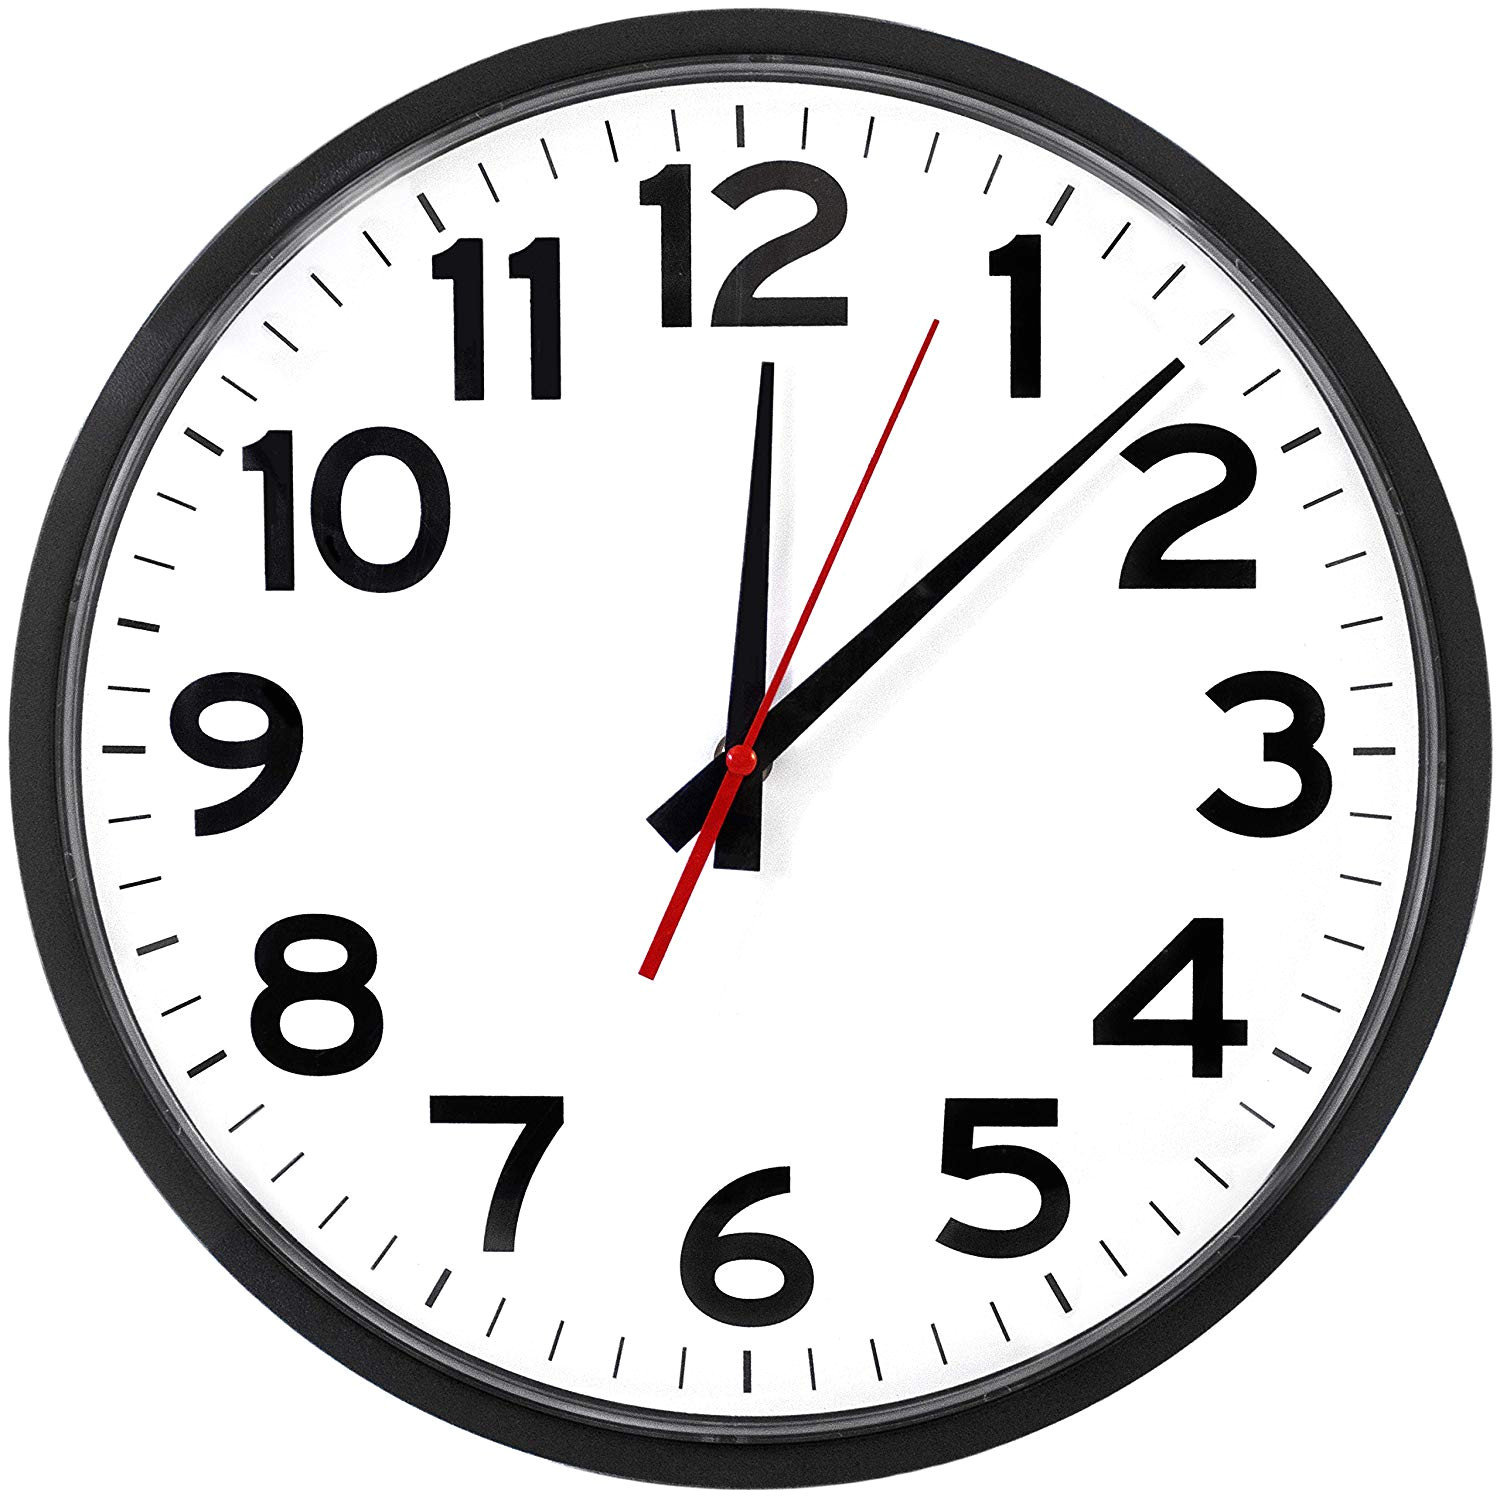 amazon com the ultimate wall clock atomic wall clock large silent analog battery operated easy to read home kitchen